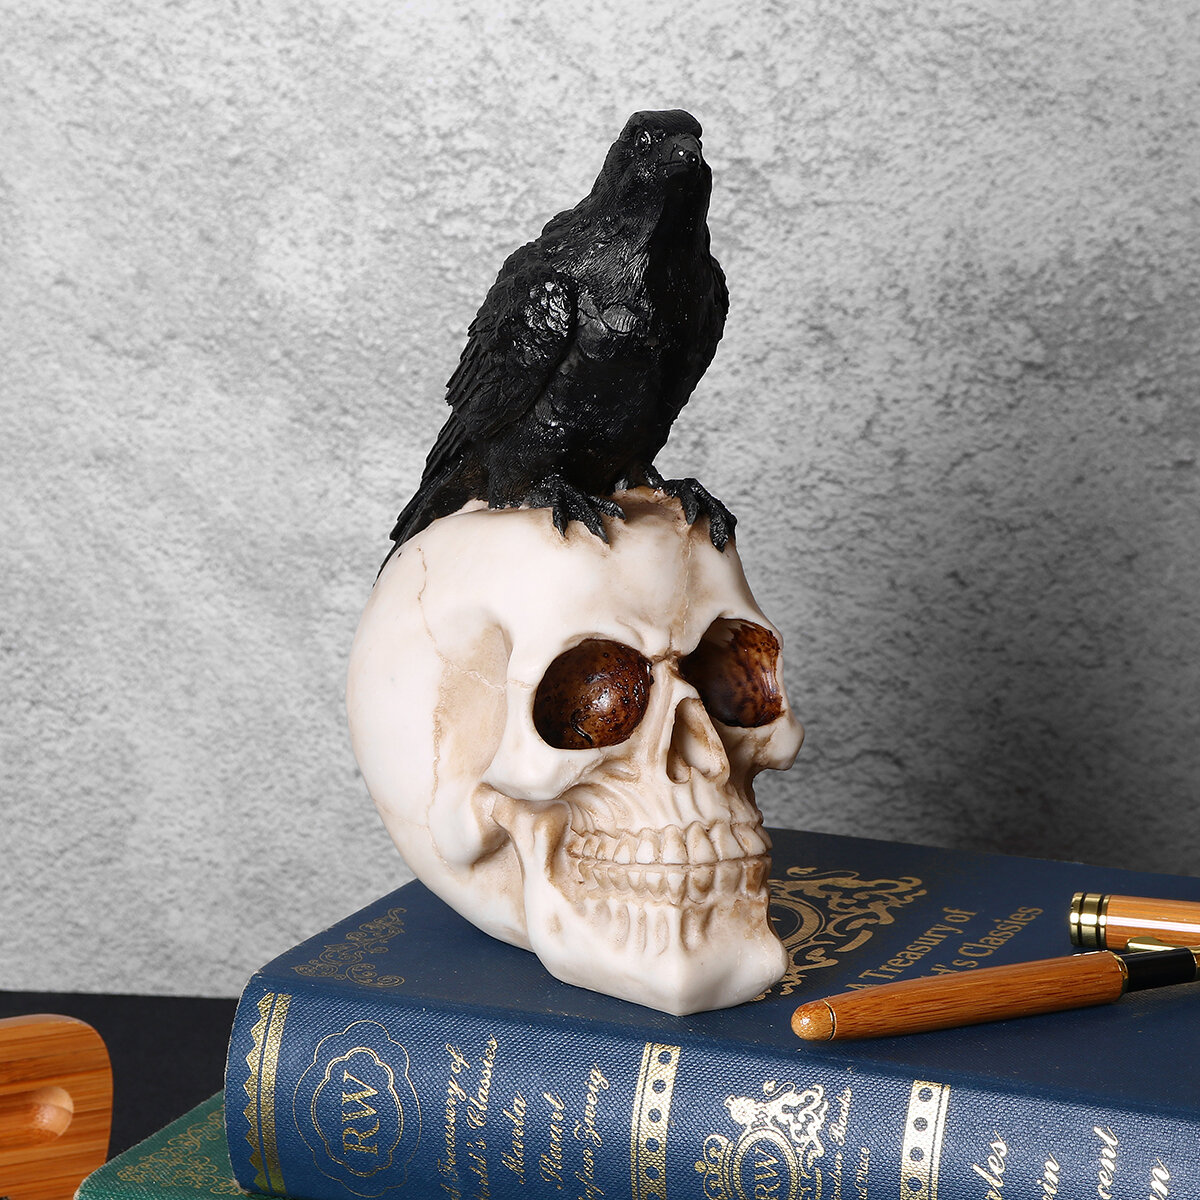 Halloween Home Decor Crow Skull Statues Sculptures Resin Decorative Craft Crow Skeleton for Halloween Party Decor